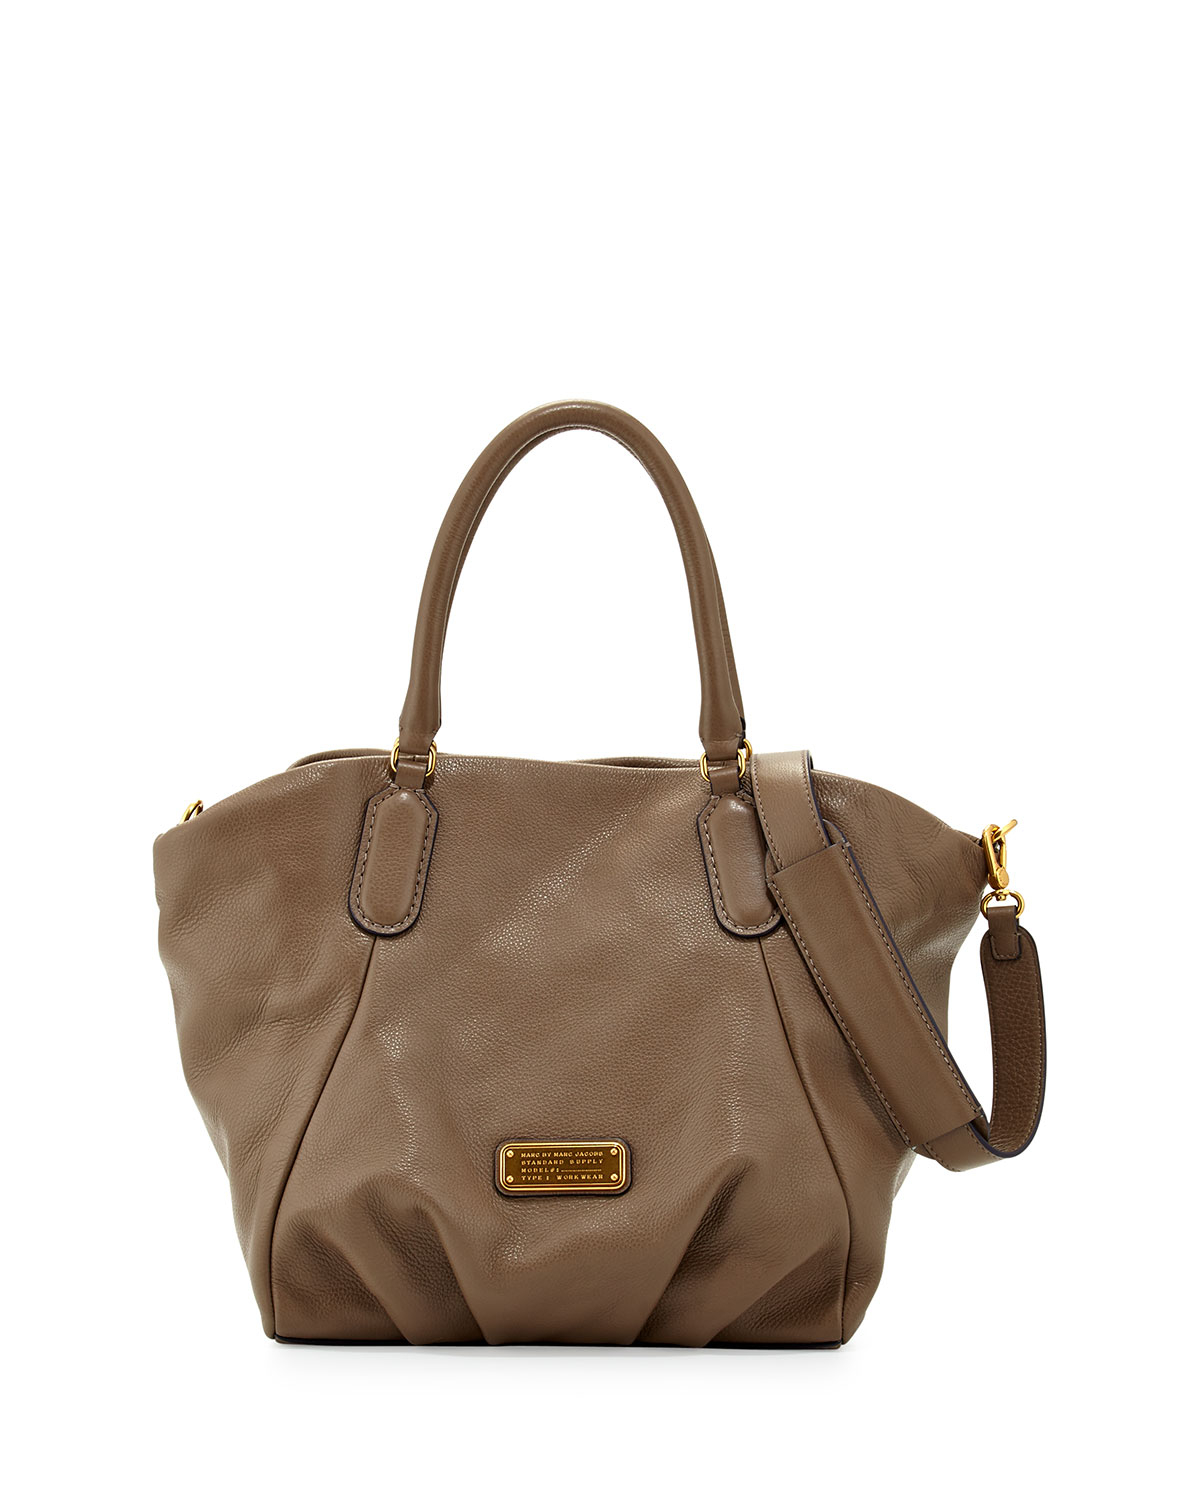 marc by marc jacobs new q fran leather tote bag in brown taupe lyst. Black Bedroom Furniture Sets. Home Design Ideas